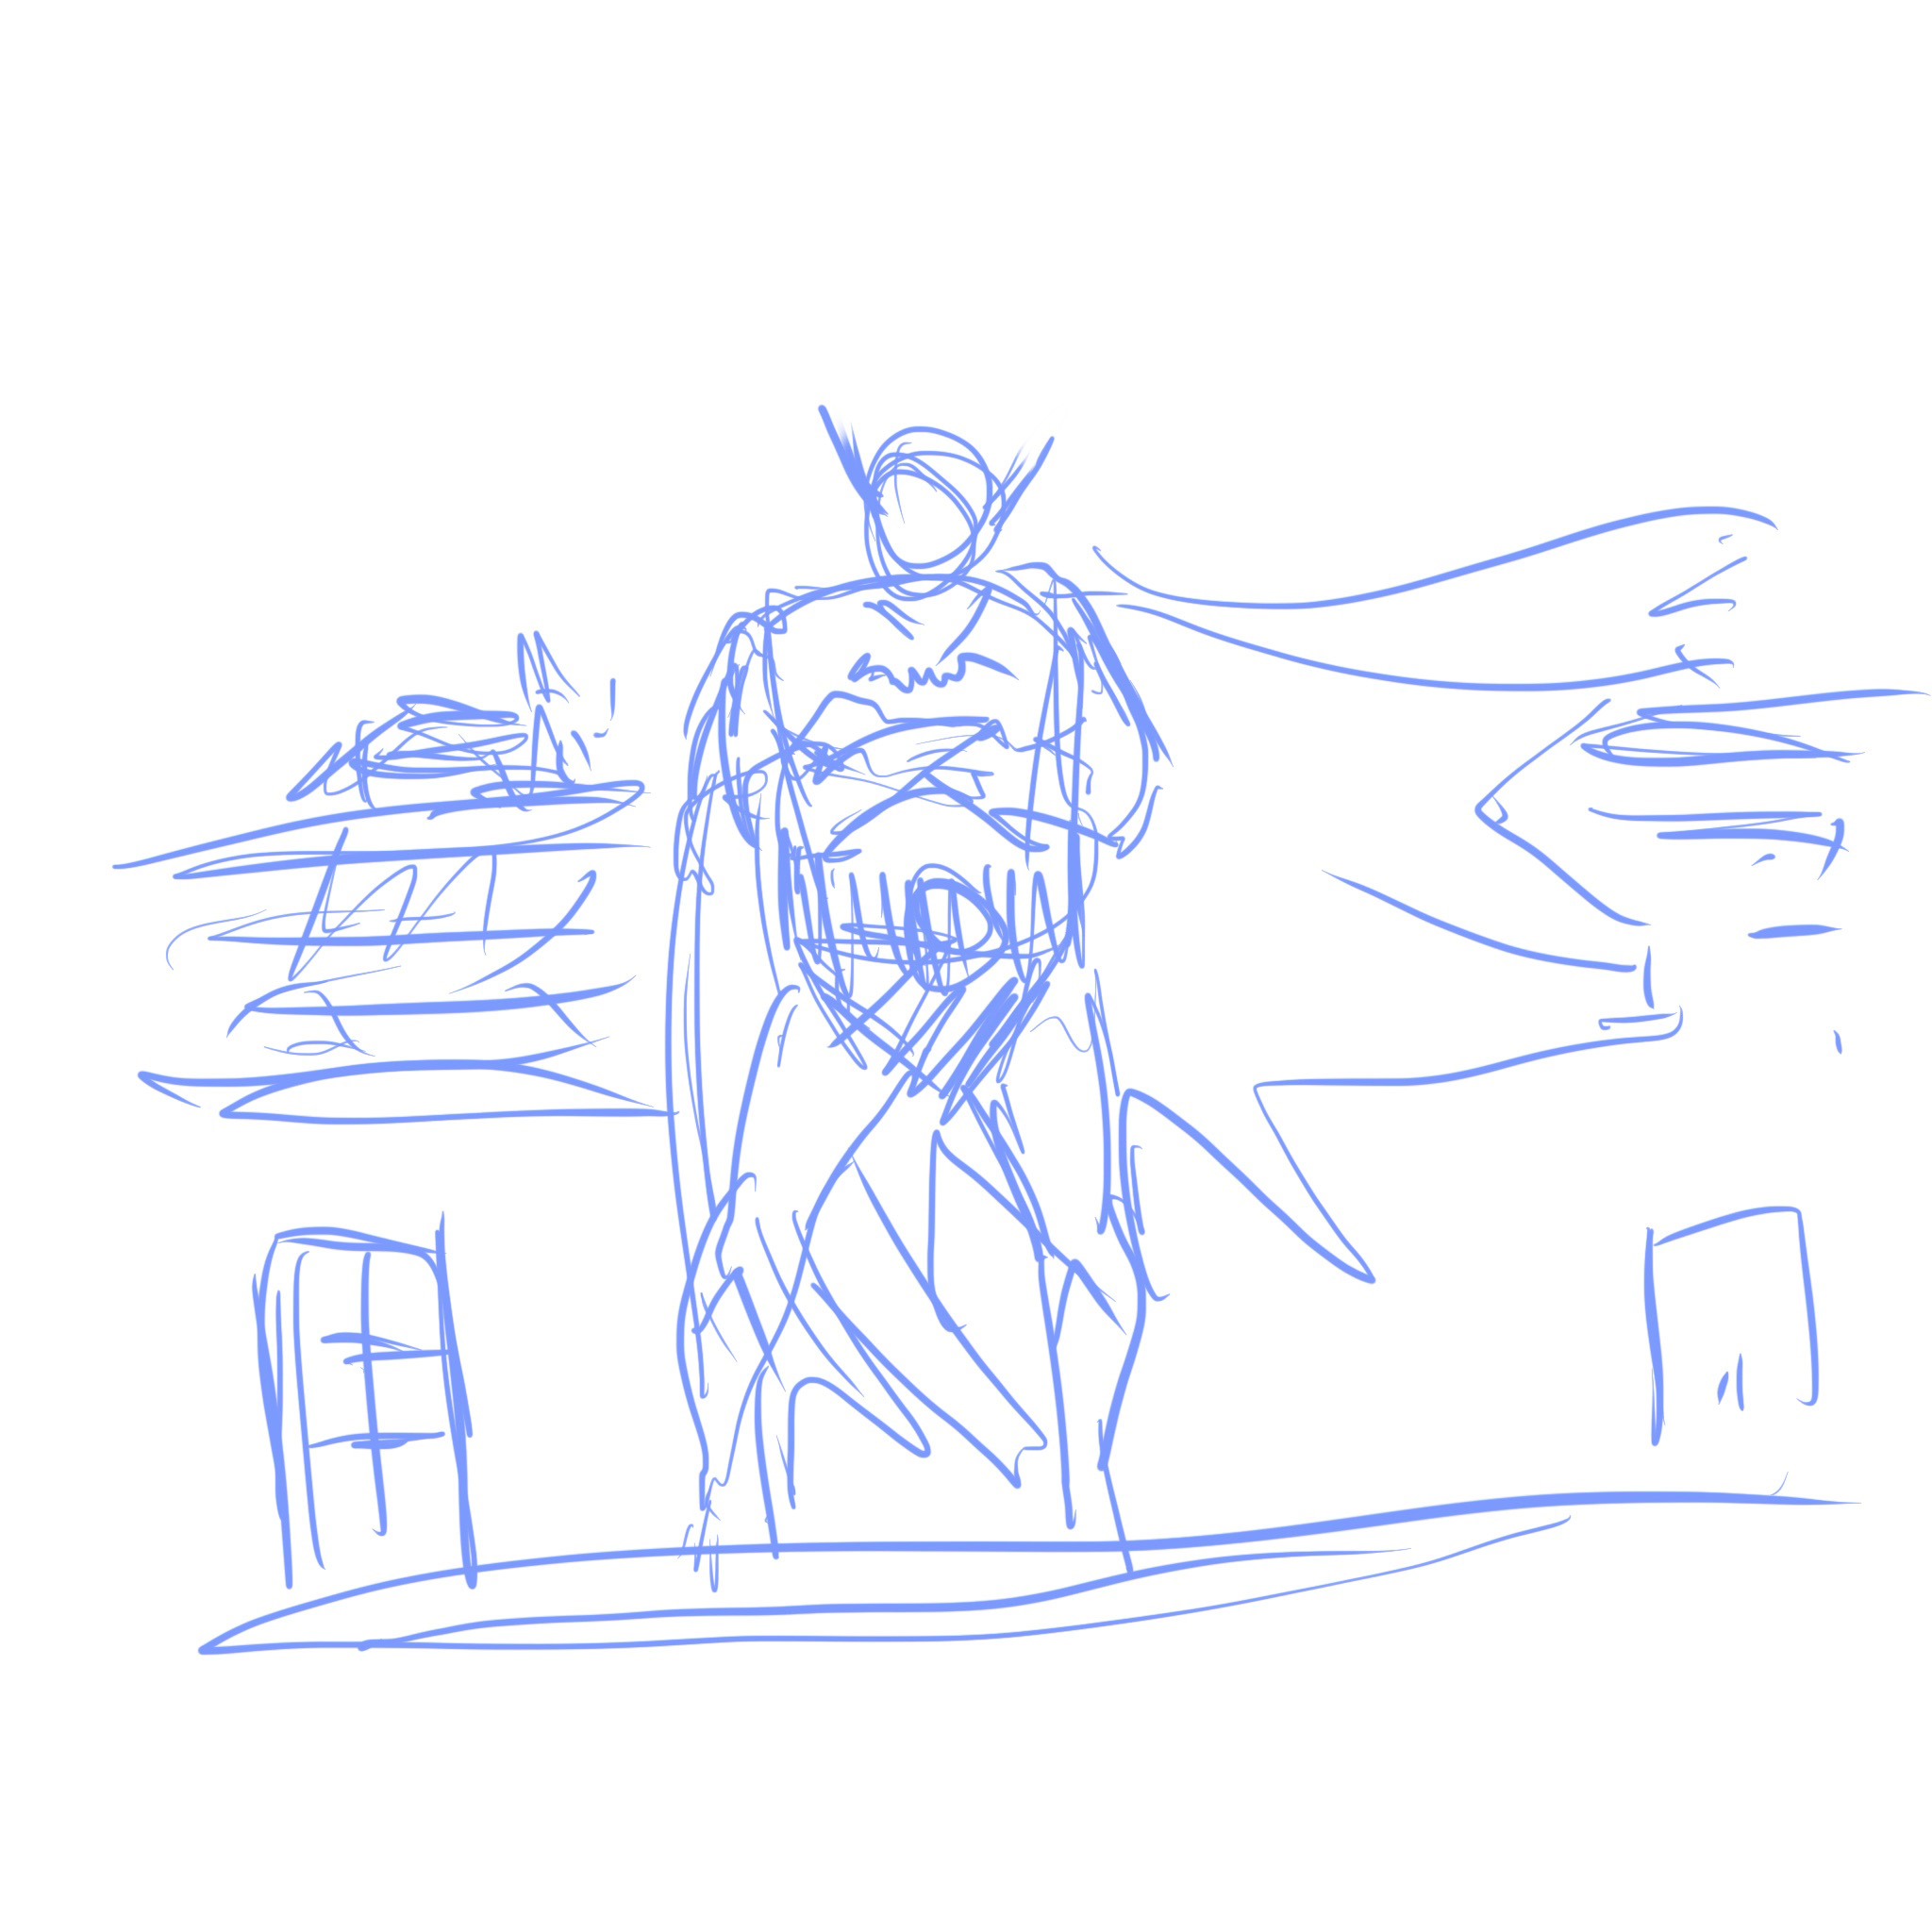 BAT first sketch.jpg